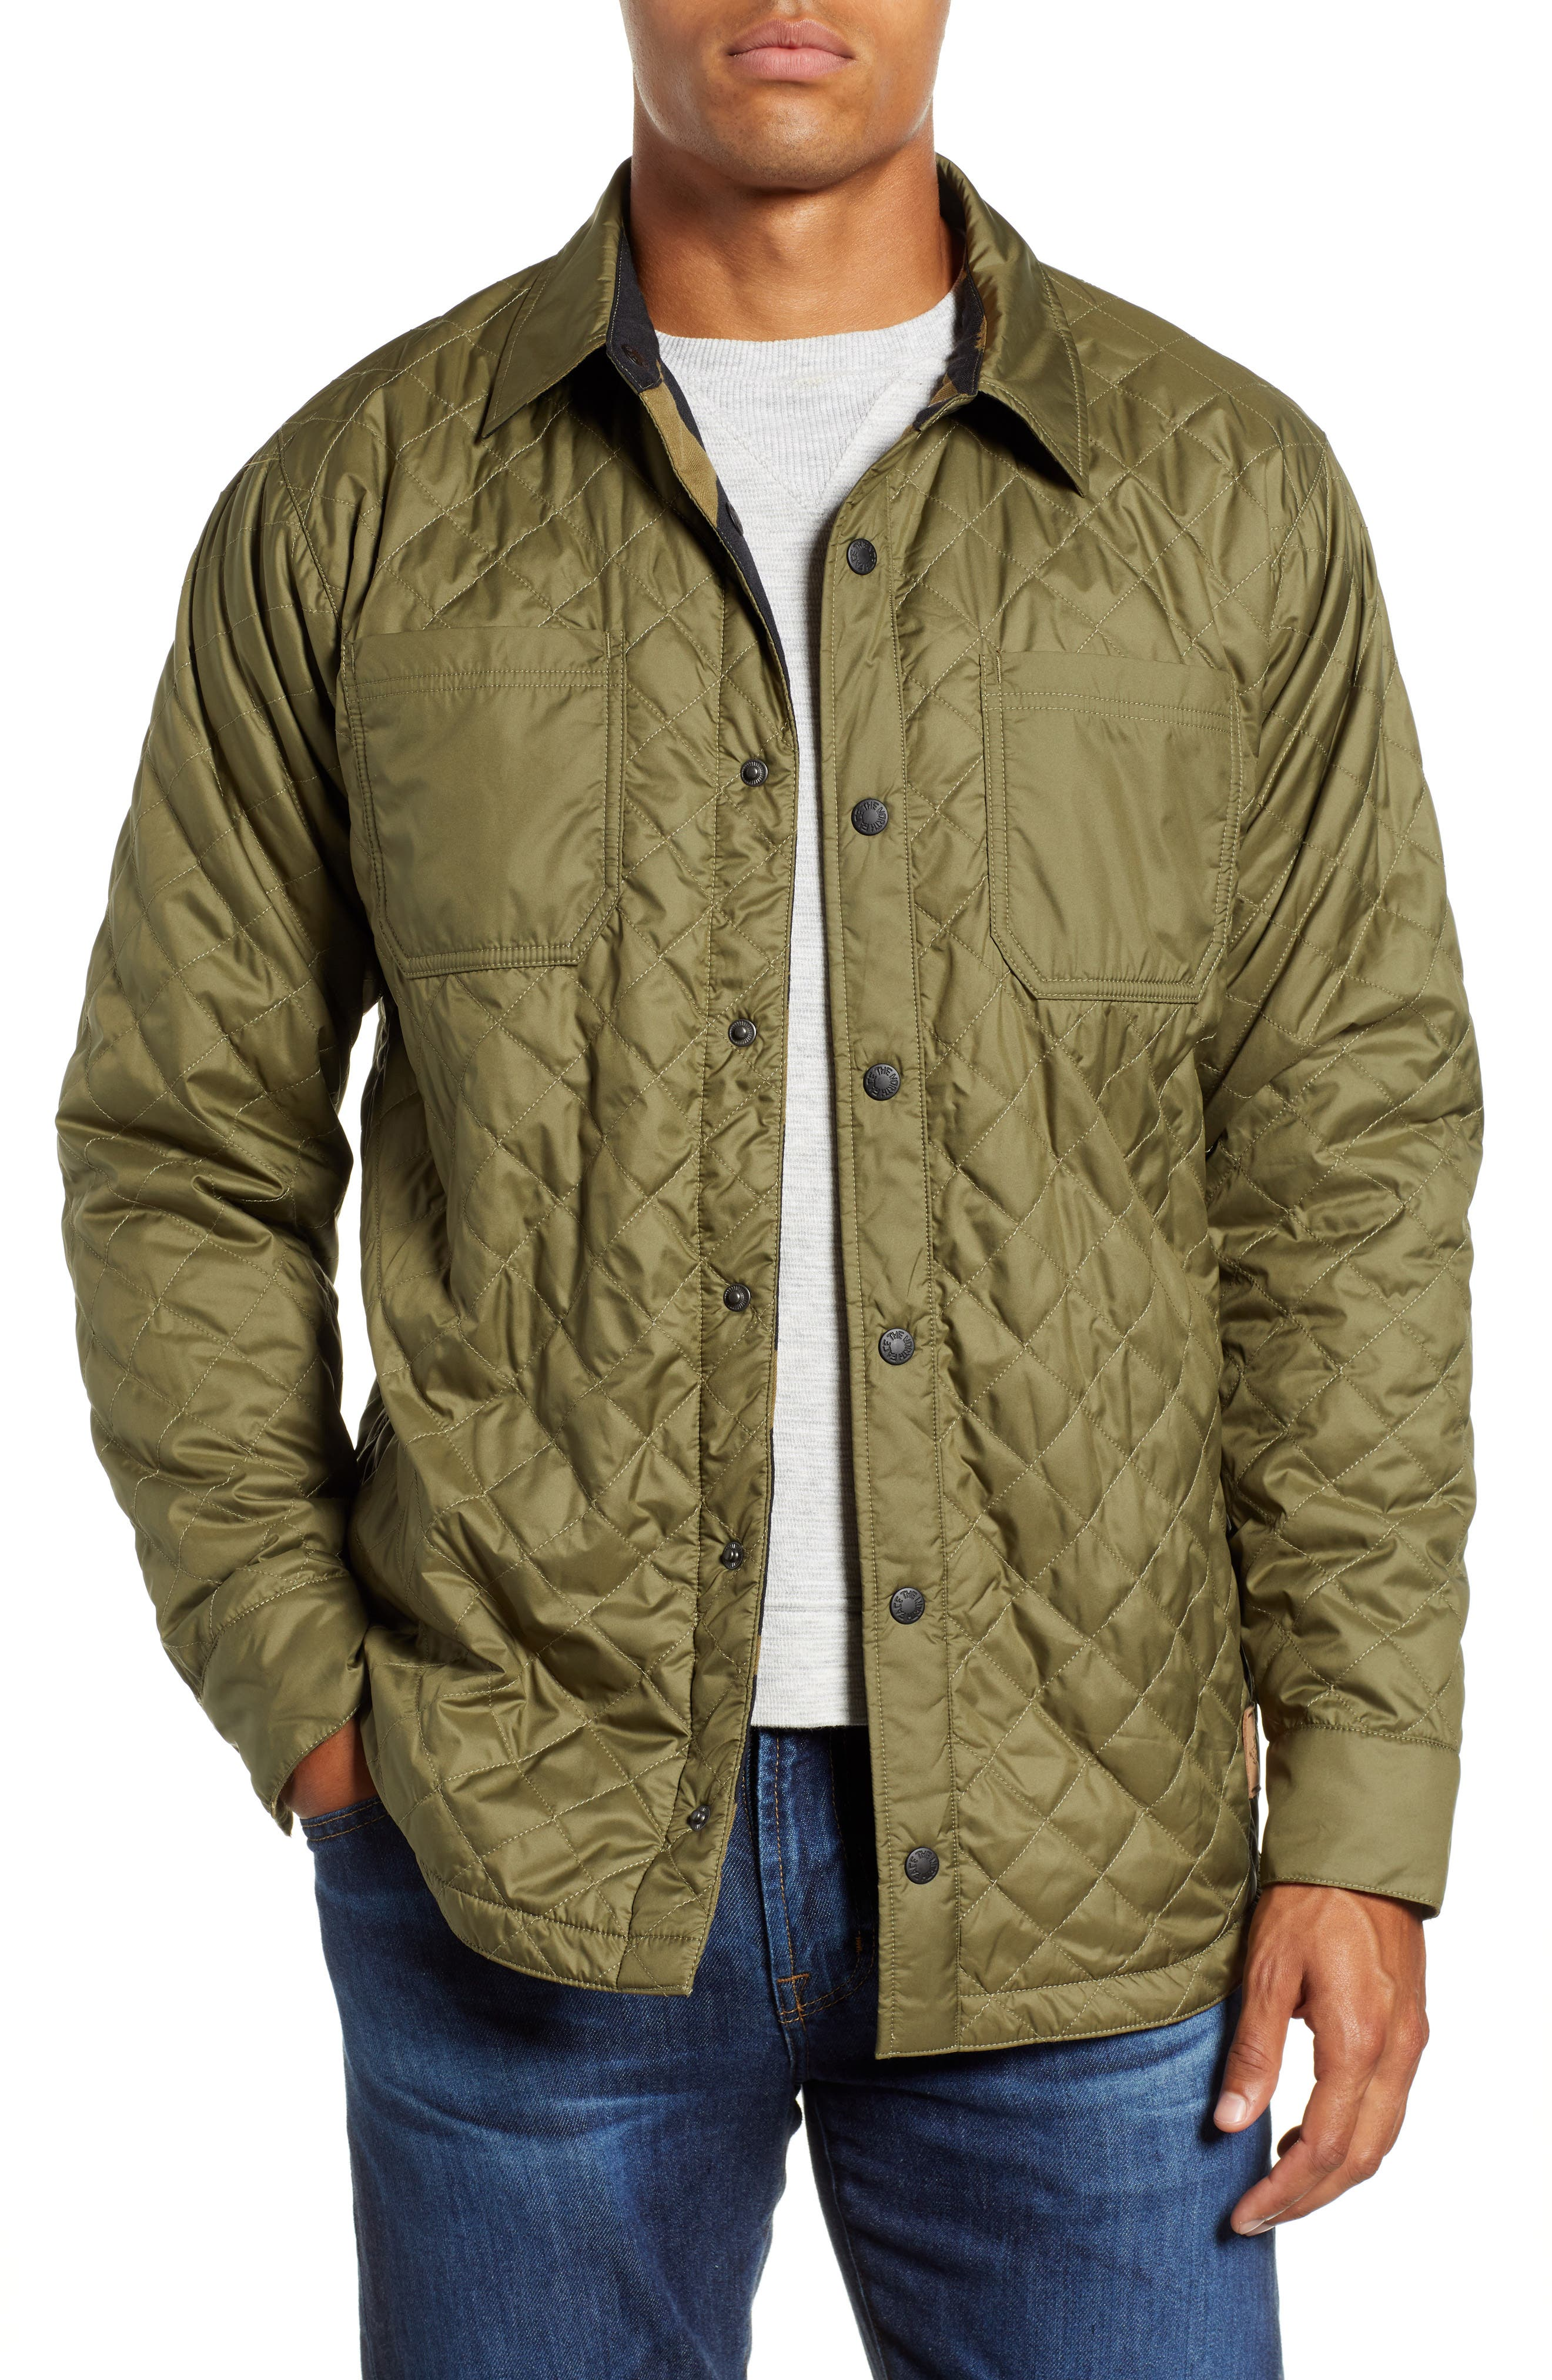 THE NORTH FACE, Fort Point Insulated Reversible Shirt Jacket, Main thumbnail 1, color, BURNT OLIVE GREEN